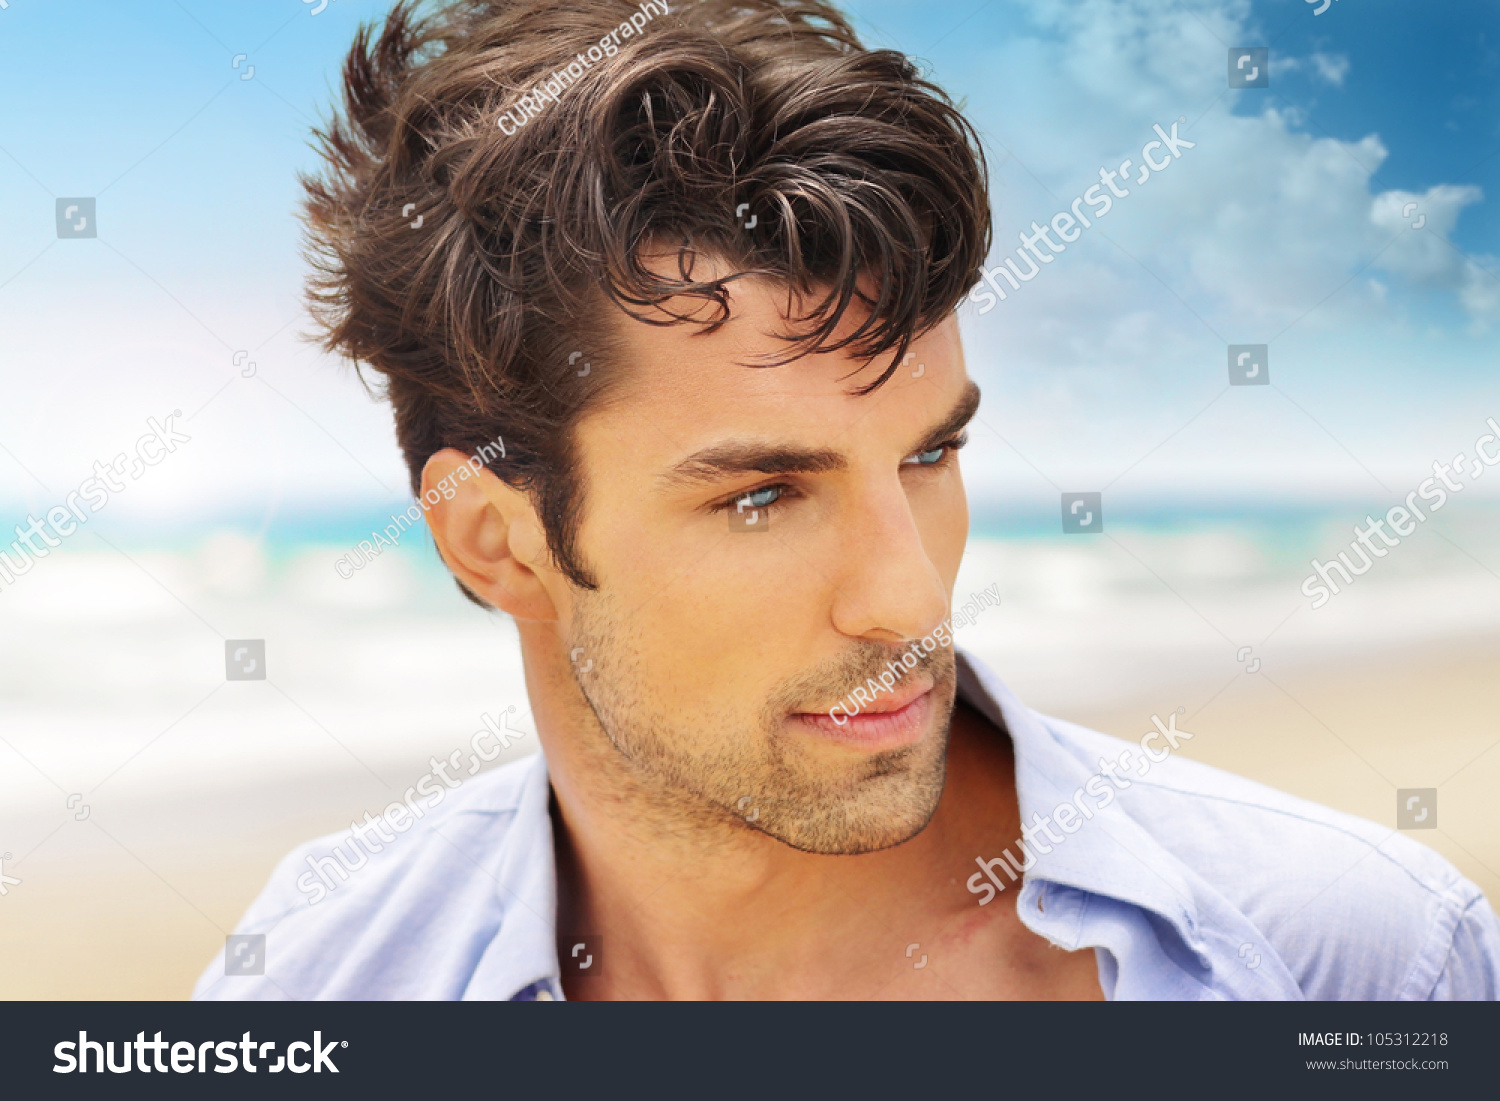 Outdoor Portrait Of A Good Looking Young Man Stock Photo ...  Good Looking Young Man